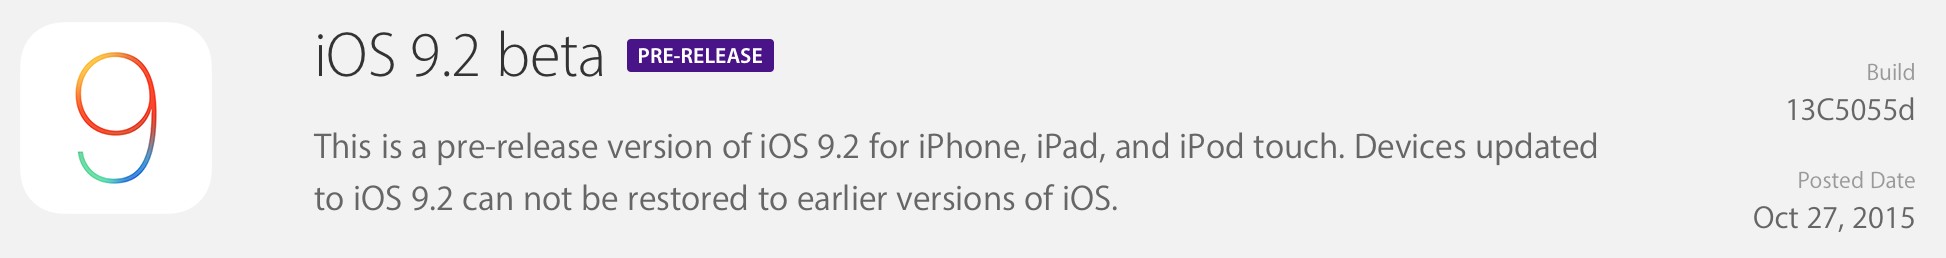 iOS 9 Beta Release Notes-bildschirmfoto-2015-10-27-um-18.21.00.png